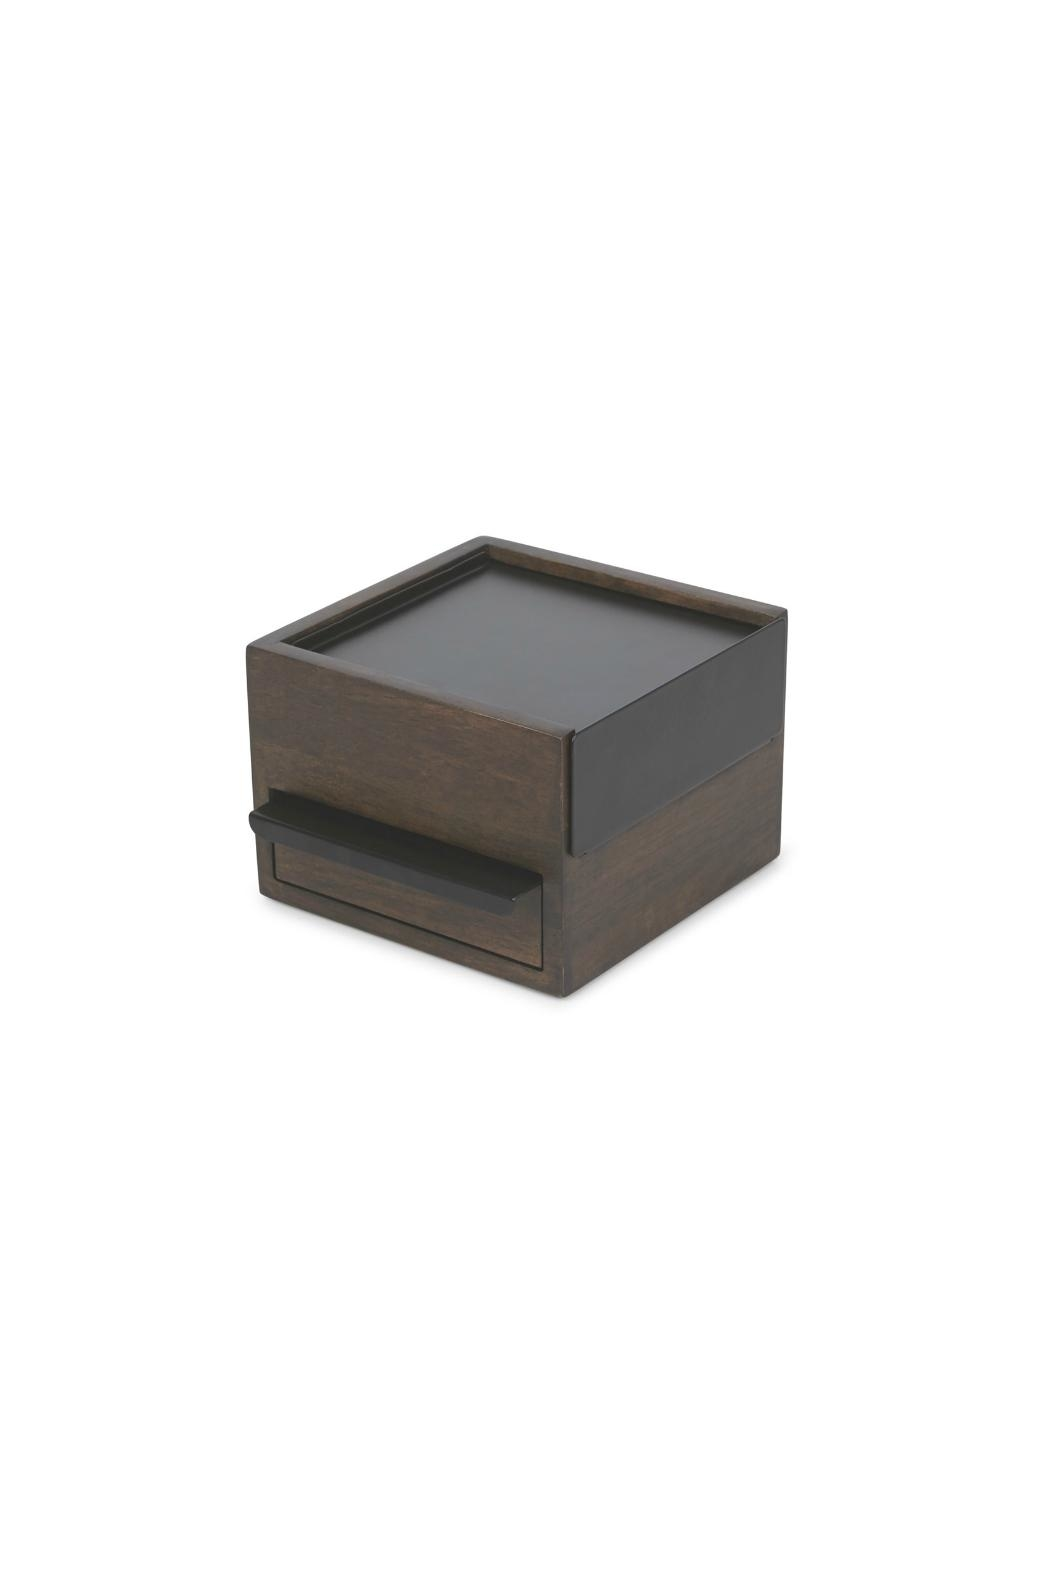 Umbra Stowit Mini Jewelry Box from Omaha by The Afternoon Shoptiques